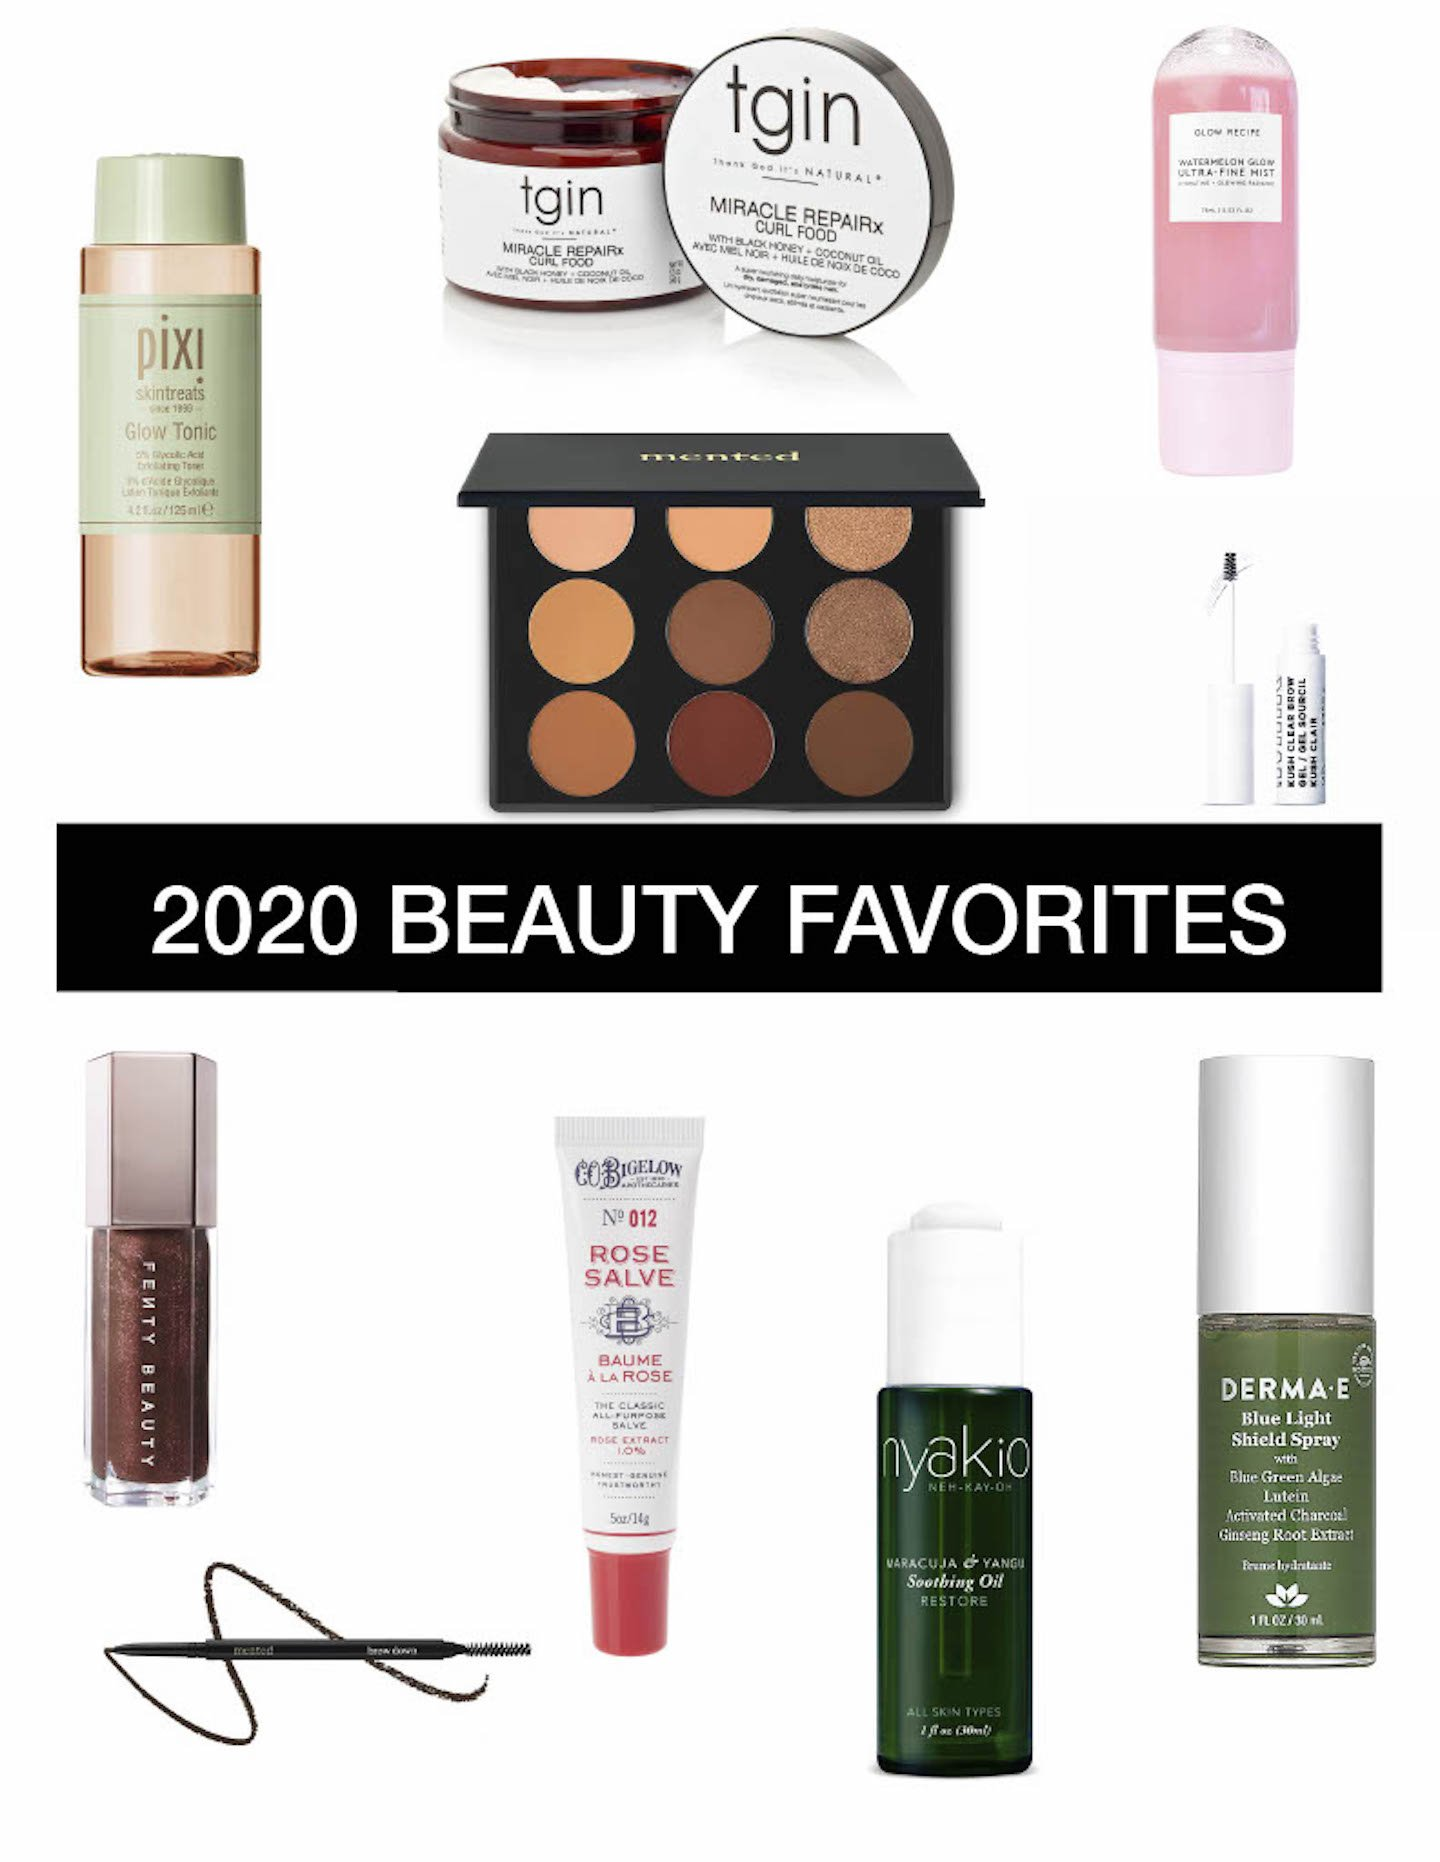 Top Ten 2020 Beauty Favorites